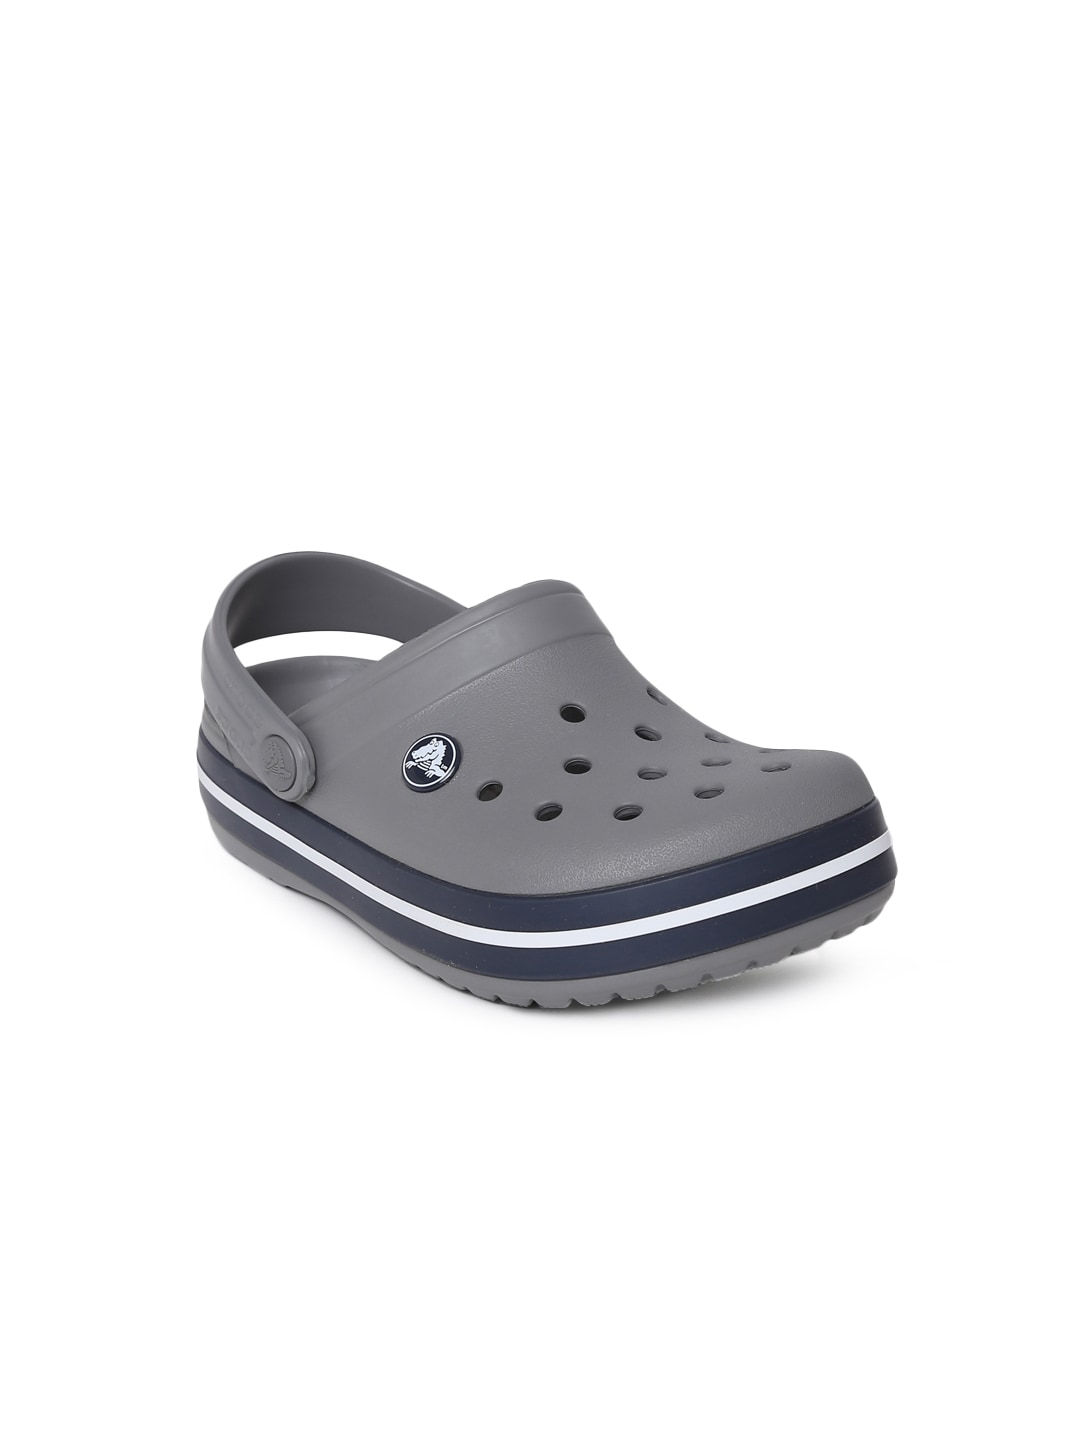 Crocs Unisex Grey Solid Crocband Clogs image